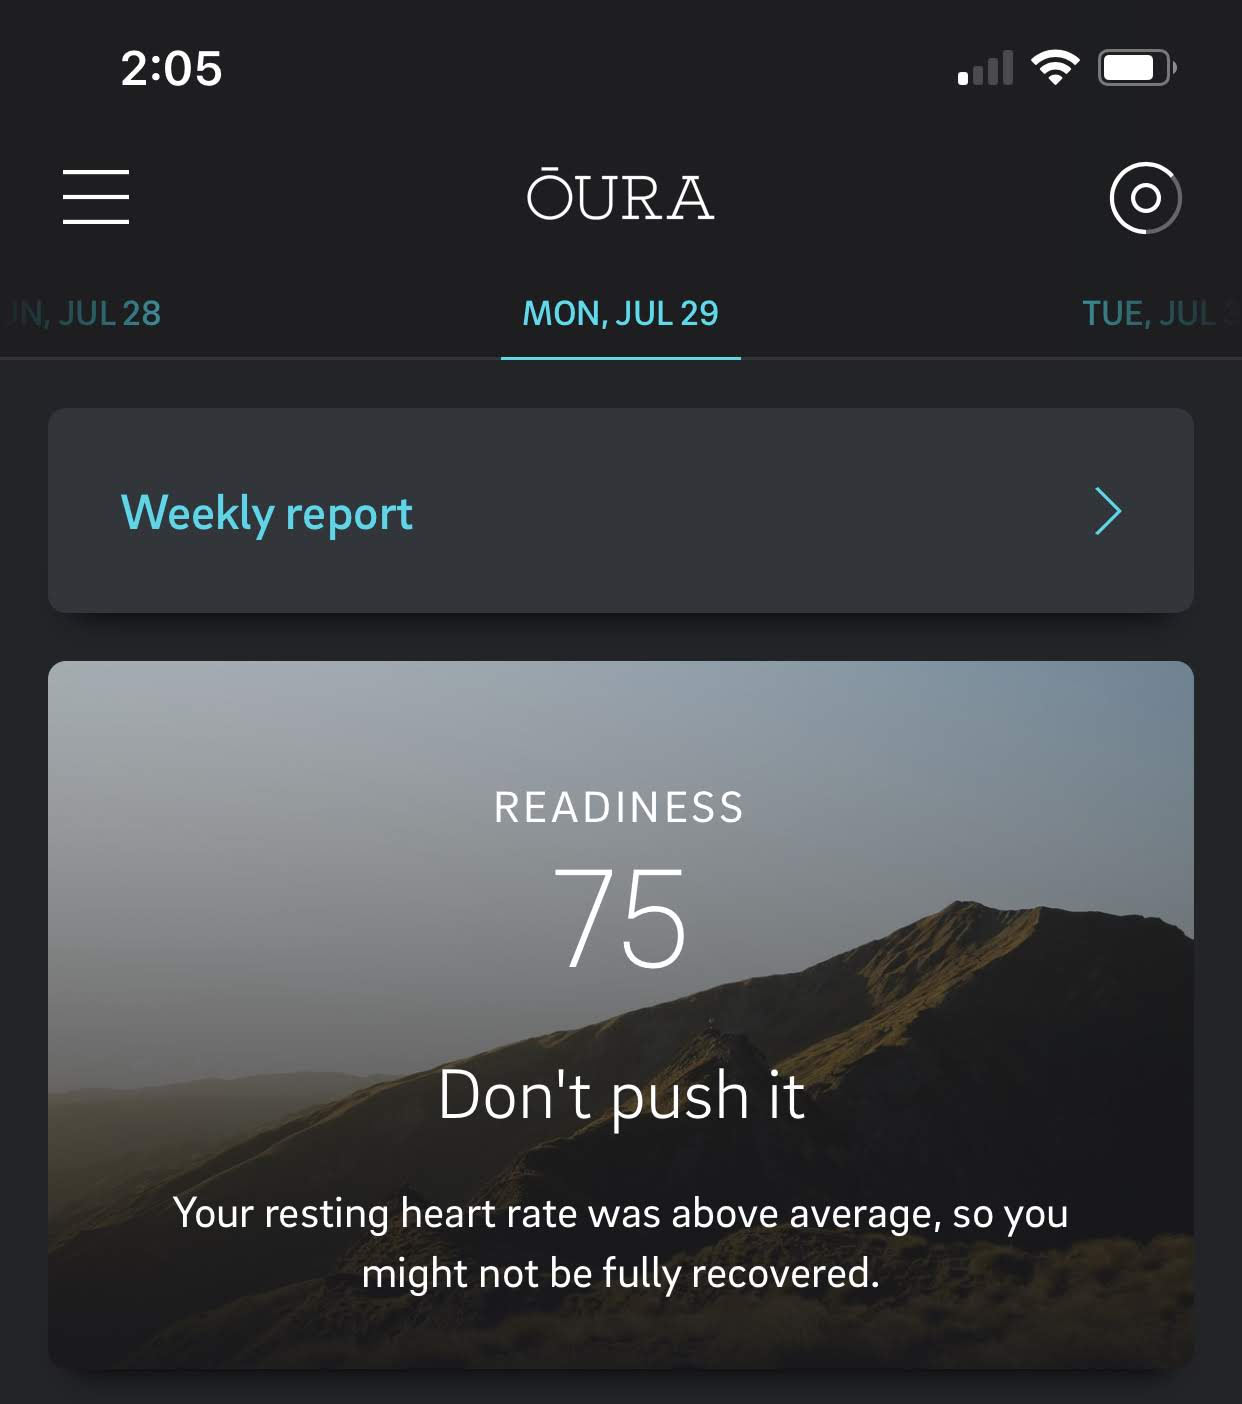 Oura don't push it